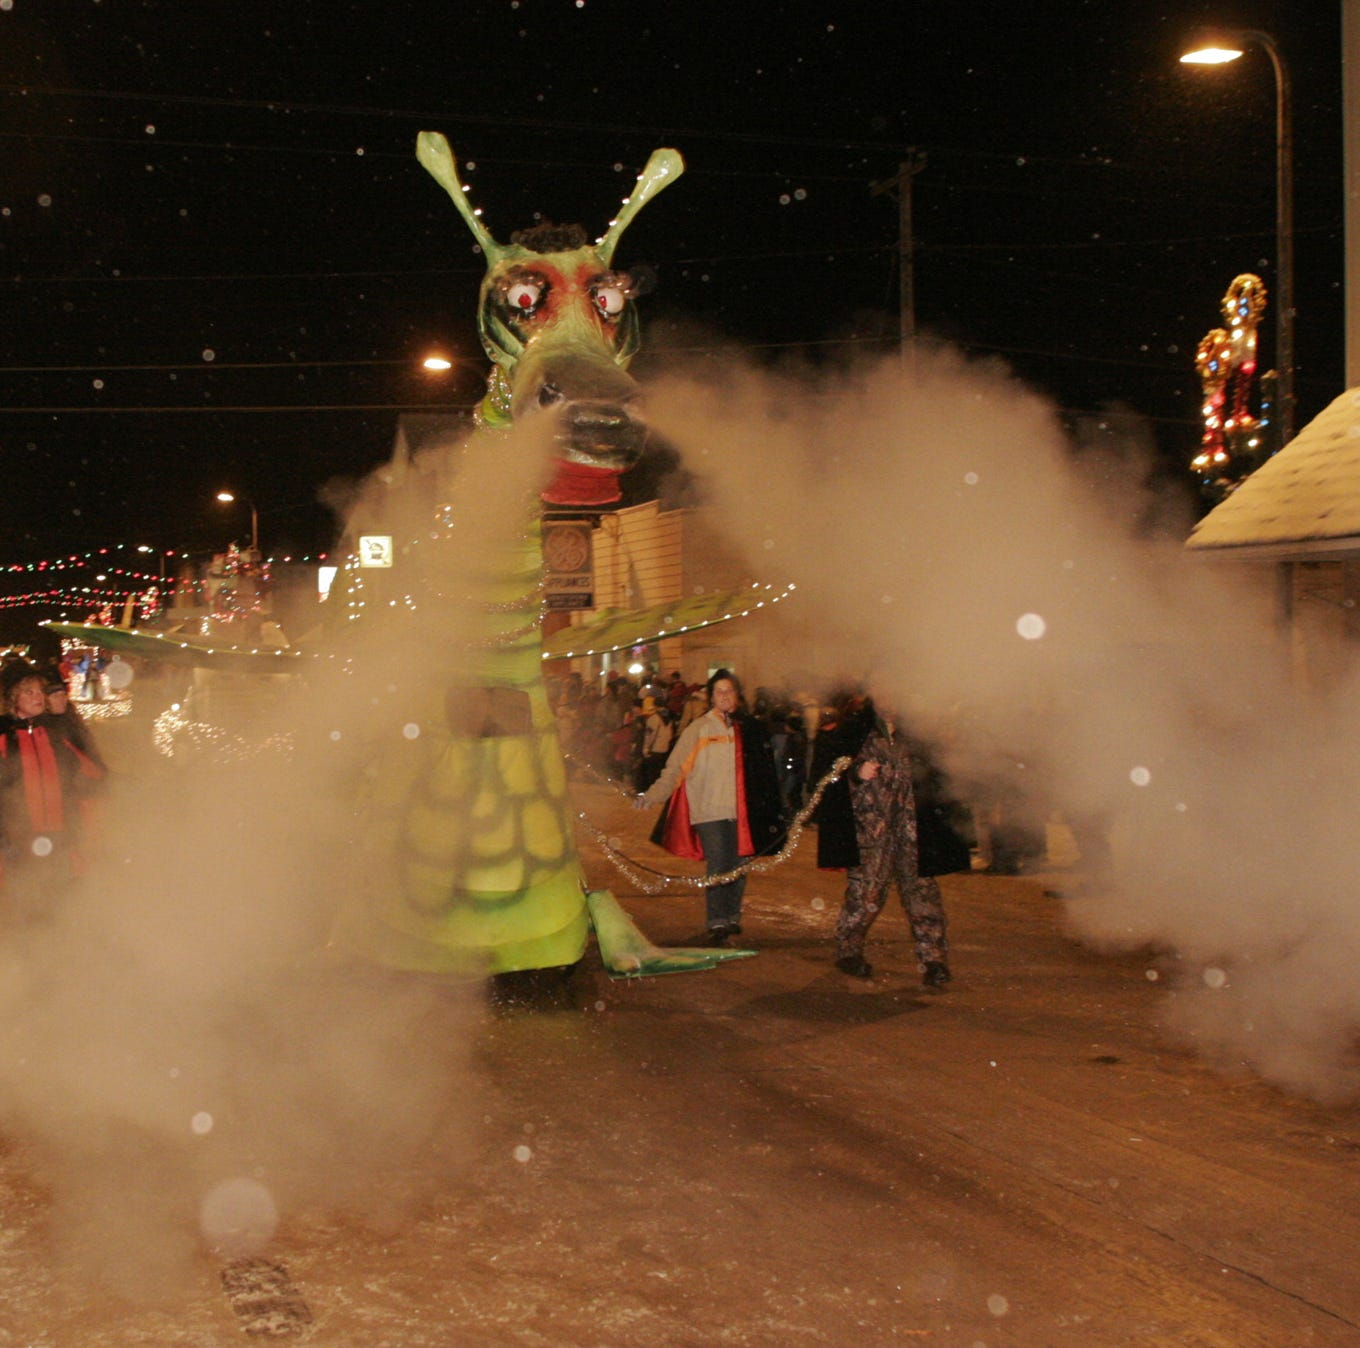 Abbotsford Christmas Parade: Puff the Magic Dragon comes to life for one night each year